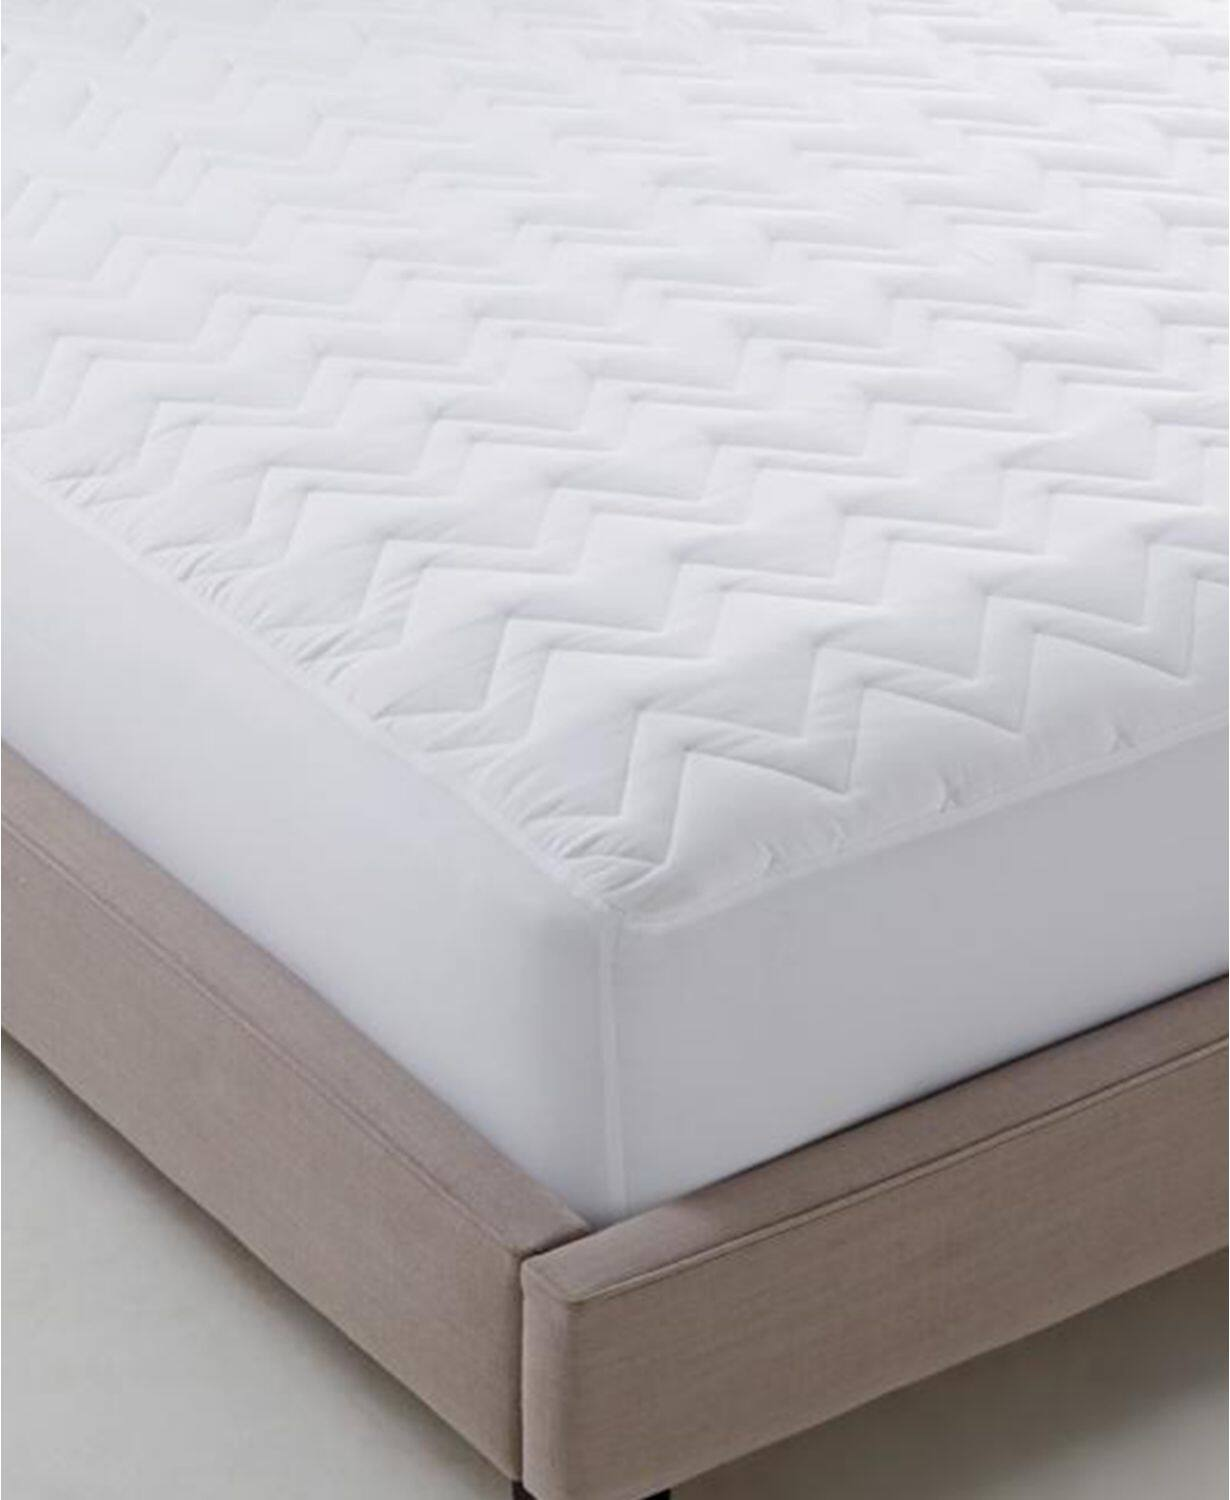 Twin or Twin XL Martha Stewart Essentials Quilted Mattress Pad $11.99 w/ in-store pick up (Twin XL is perfect for Dorms)